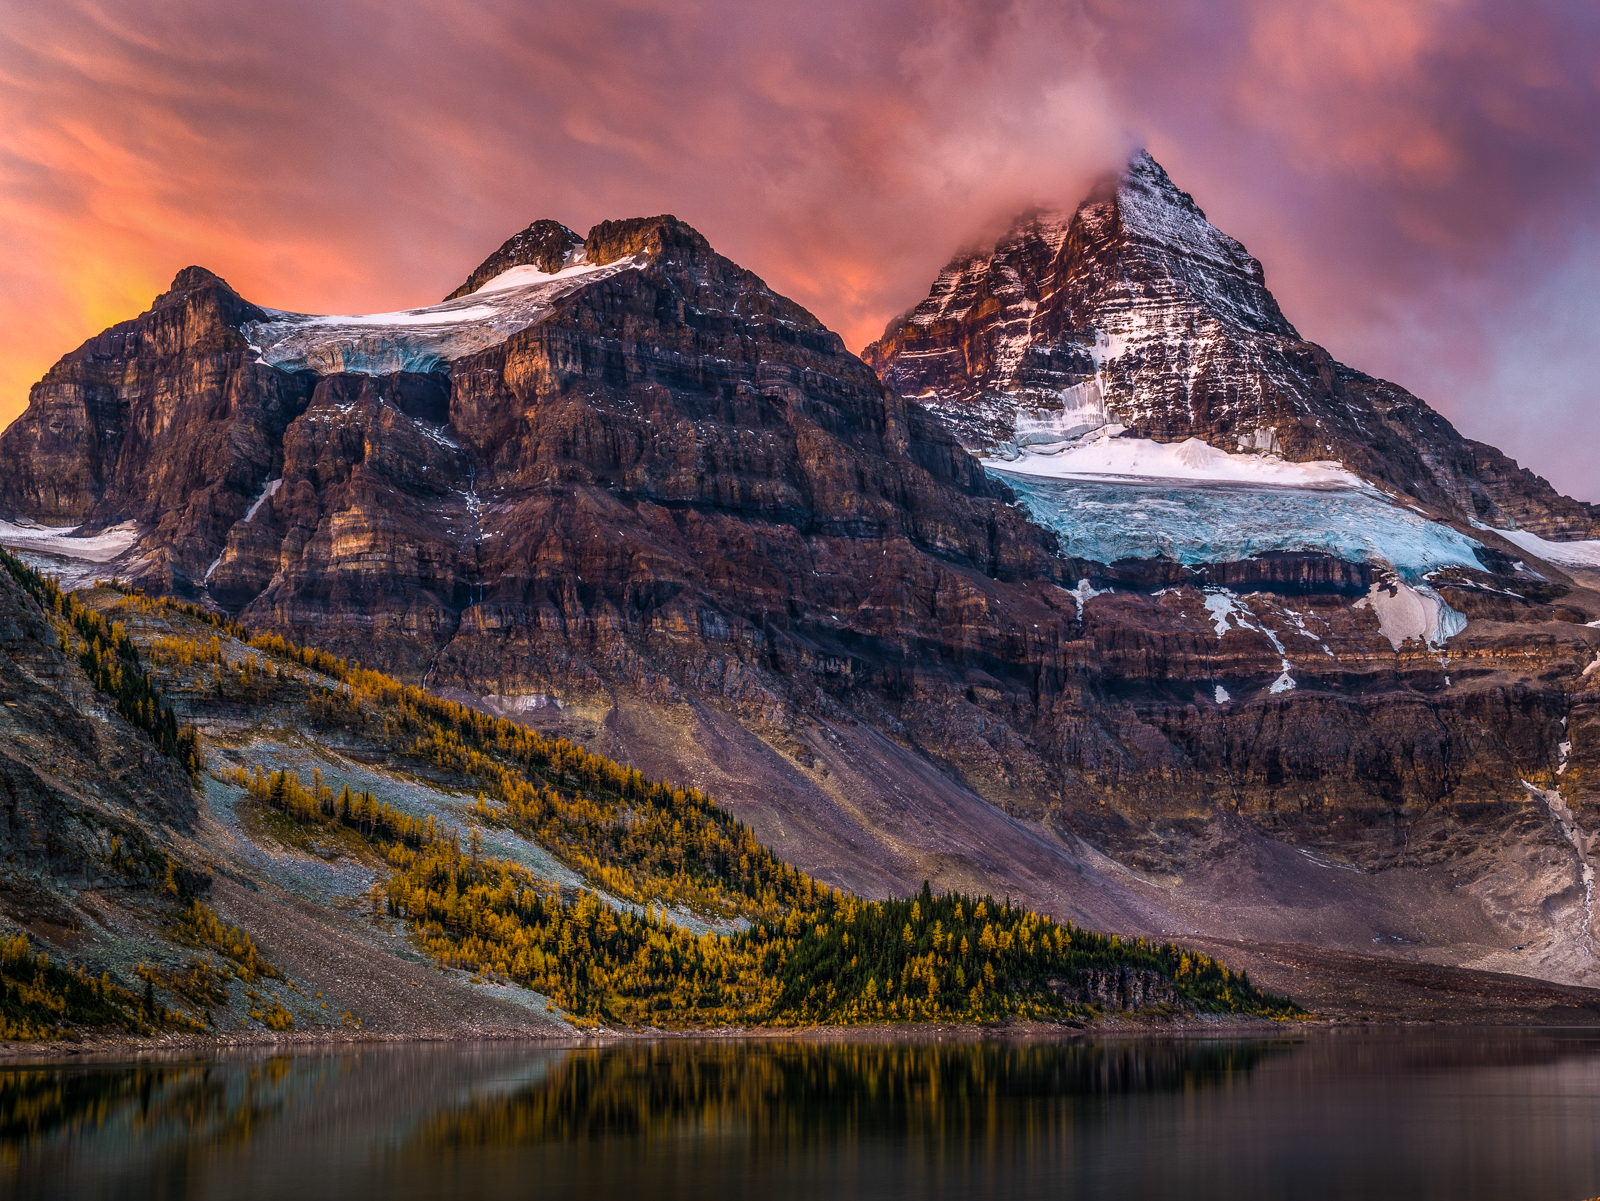 Mt+Assiniboine+2014+Fall+Colors.jpg